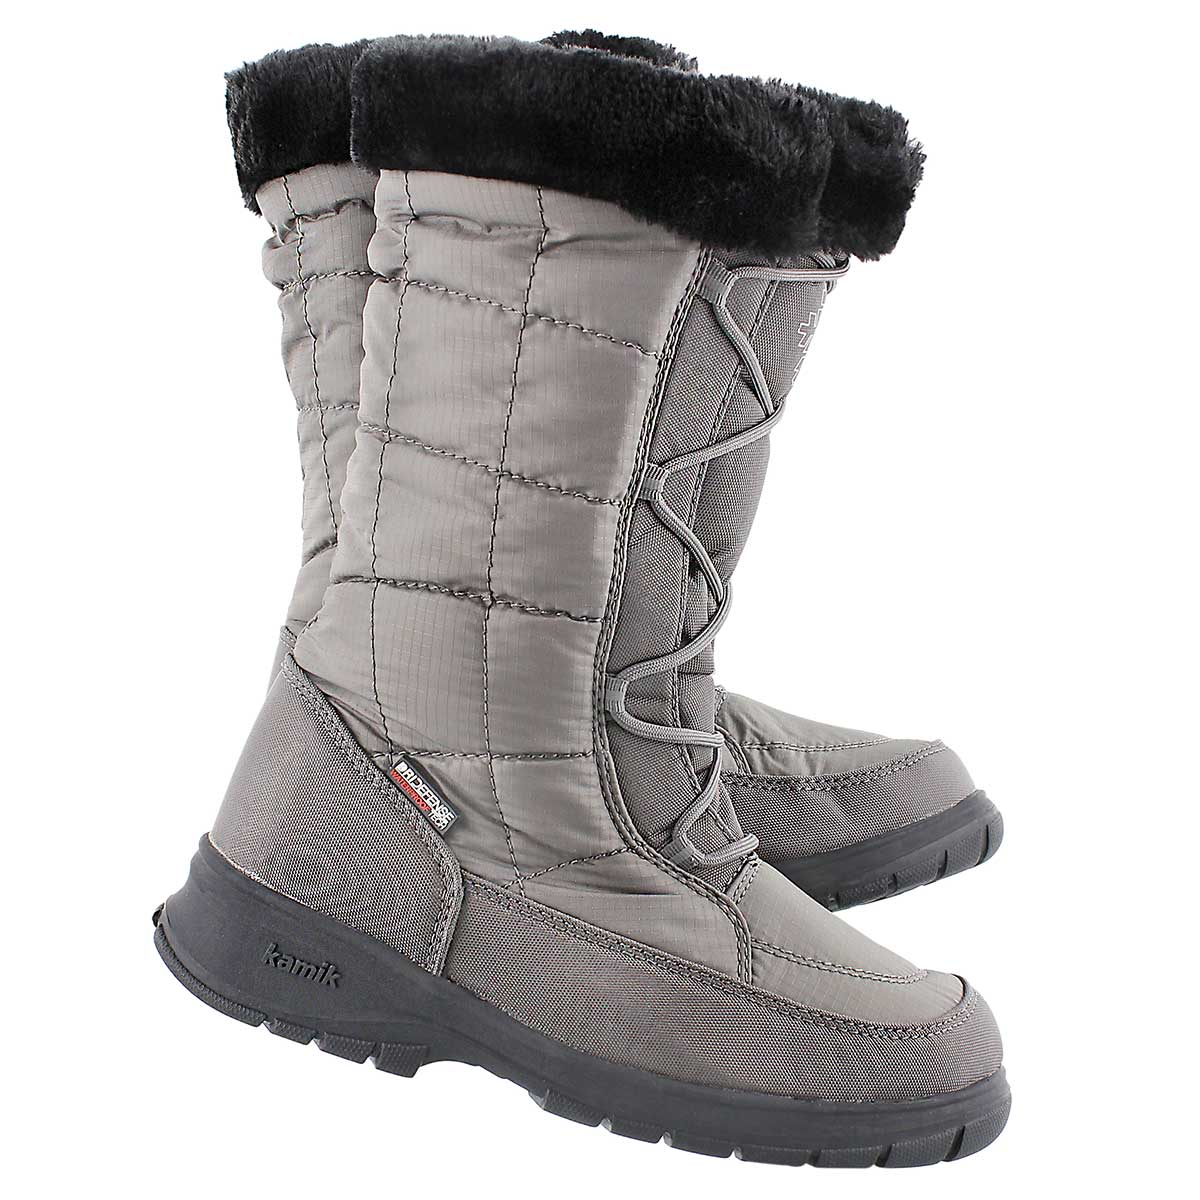 Lds New York 2 char wtpf wntr boot wide